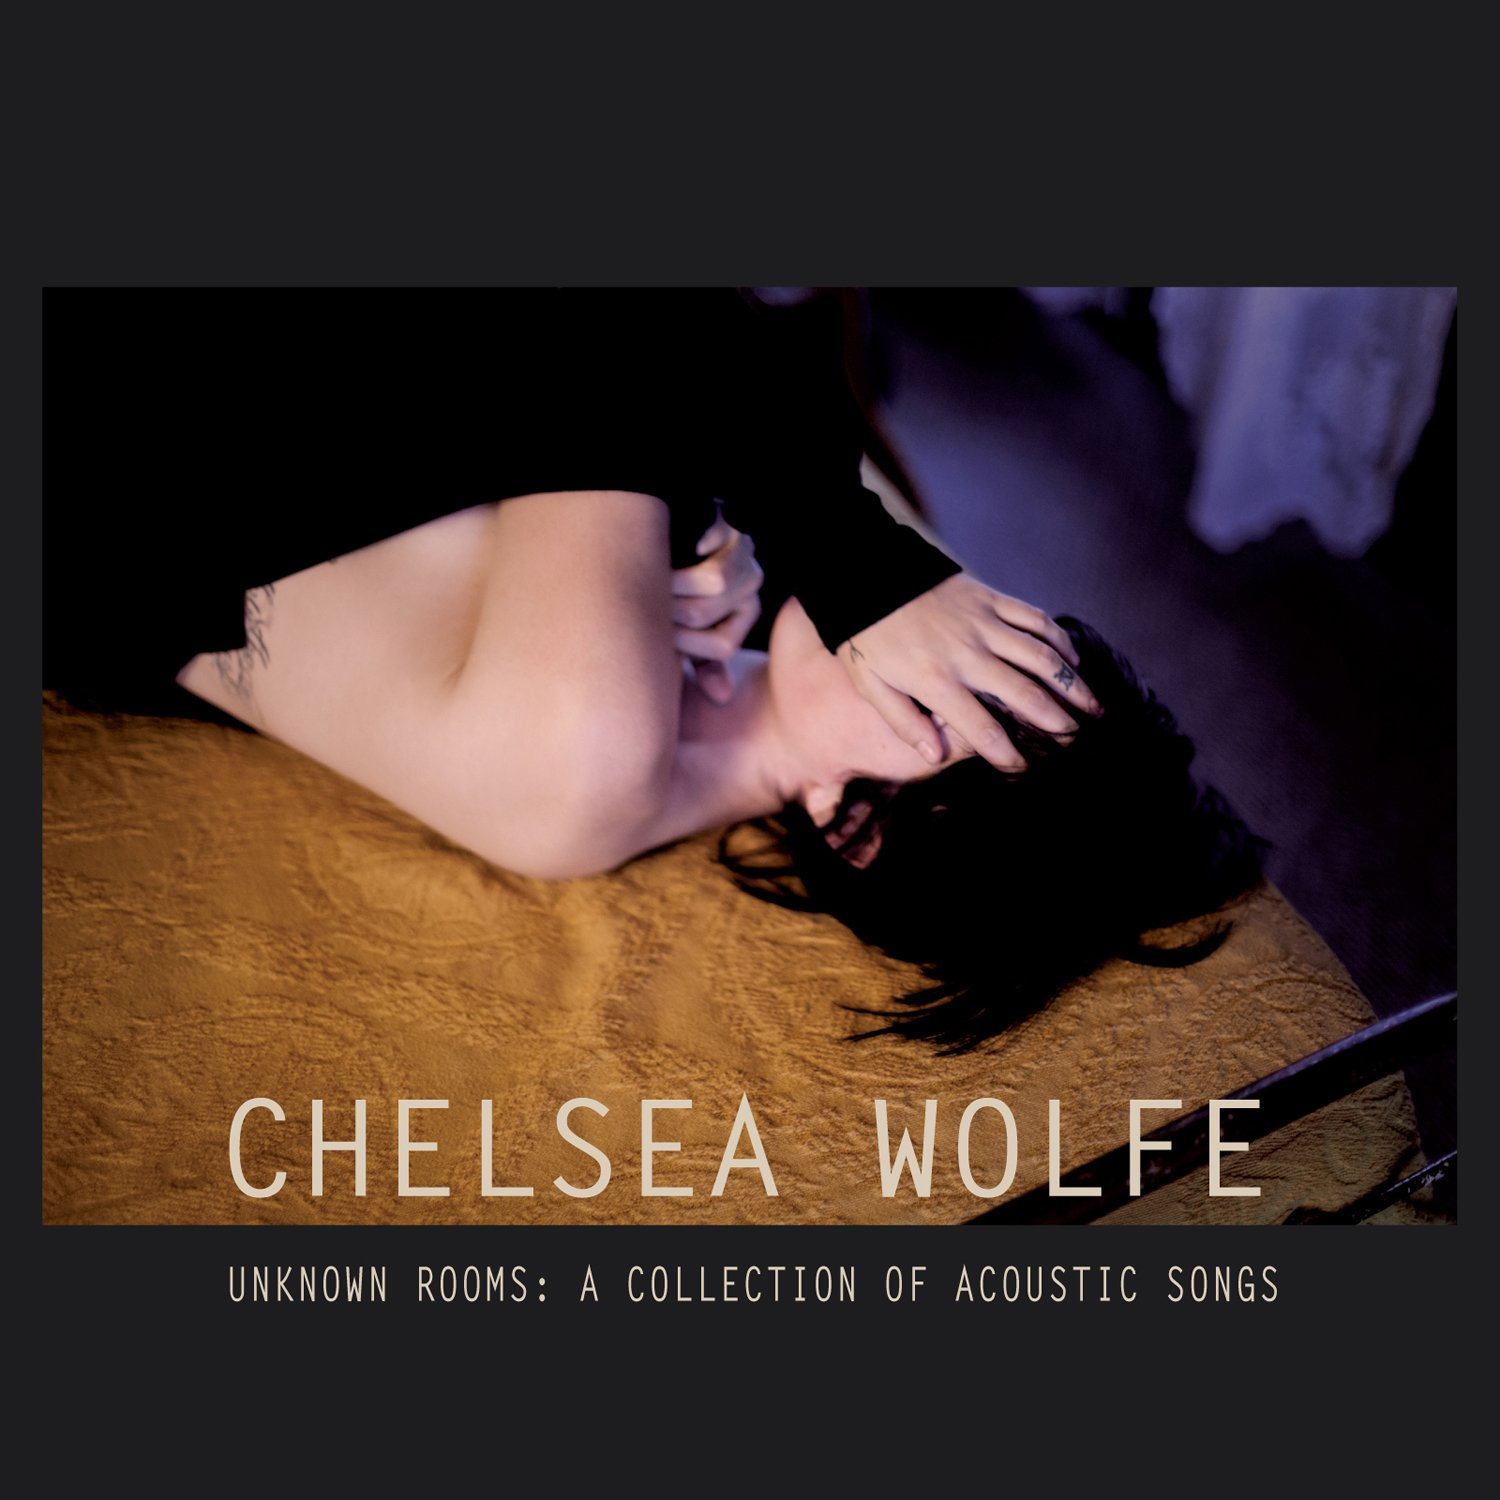 CD : Chelsea Wolfe - Unknown Rooms: A Collection of Acoustic Songs (Digipack Packaging)